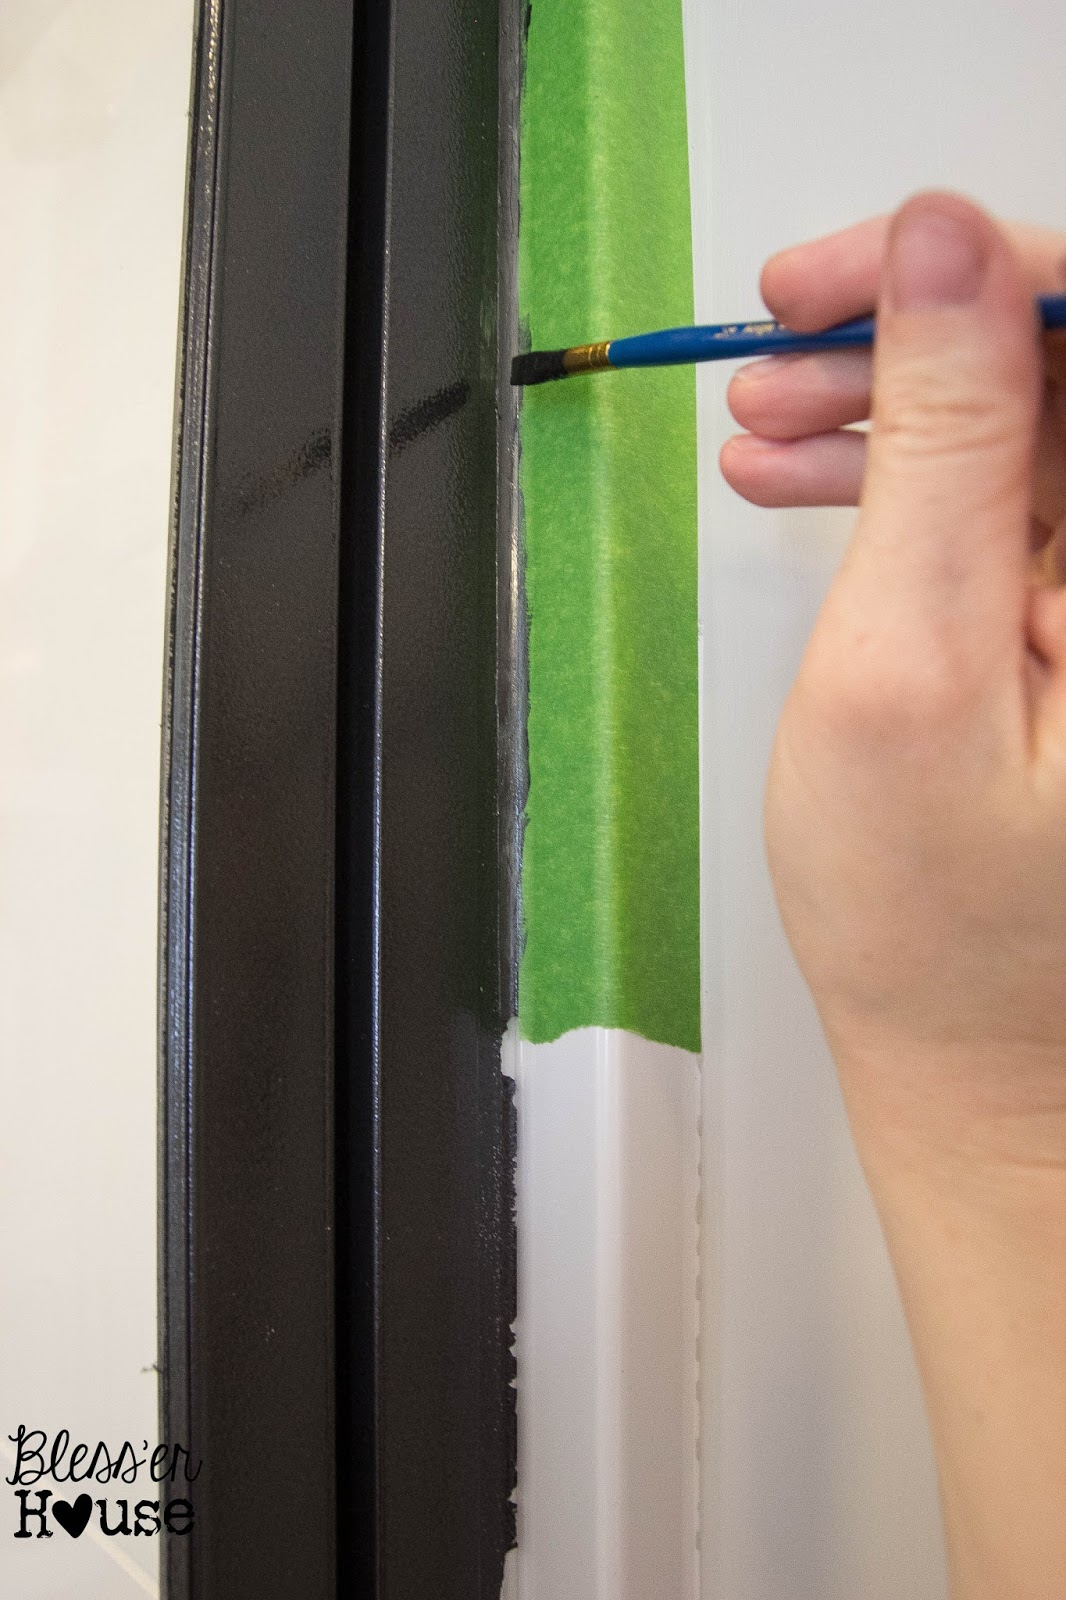 How Not To Paint A Shower Door And How To Fix Spray Paint Mistakes Bless Er House